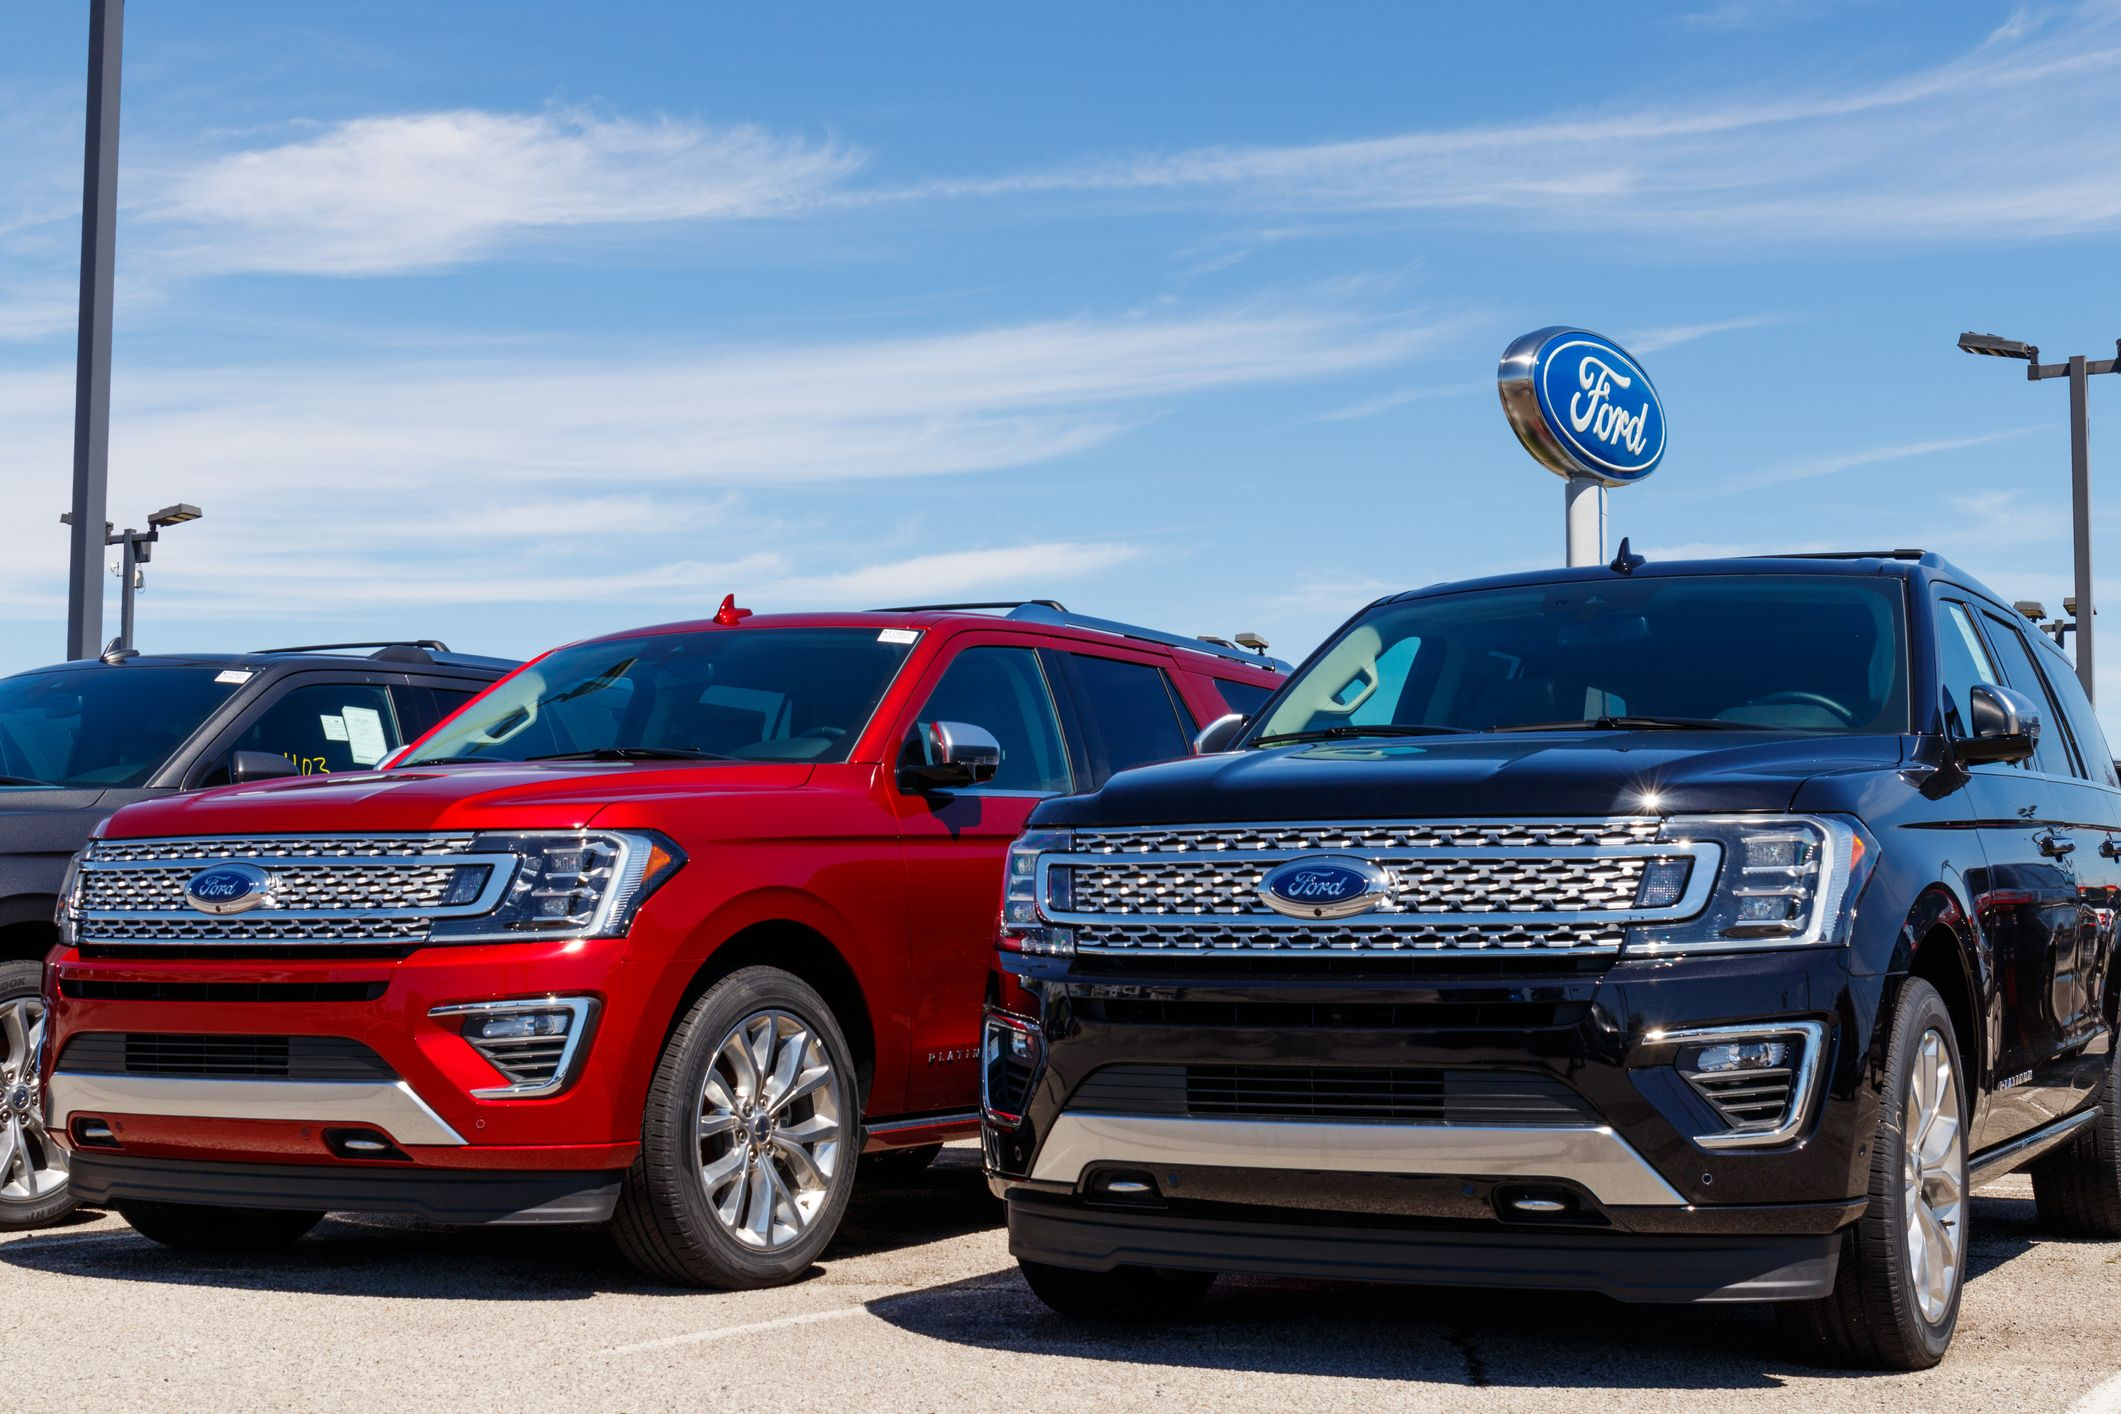 Ford Rolls Out Payment Assistance as Part of Coronavirus Response